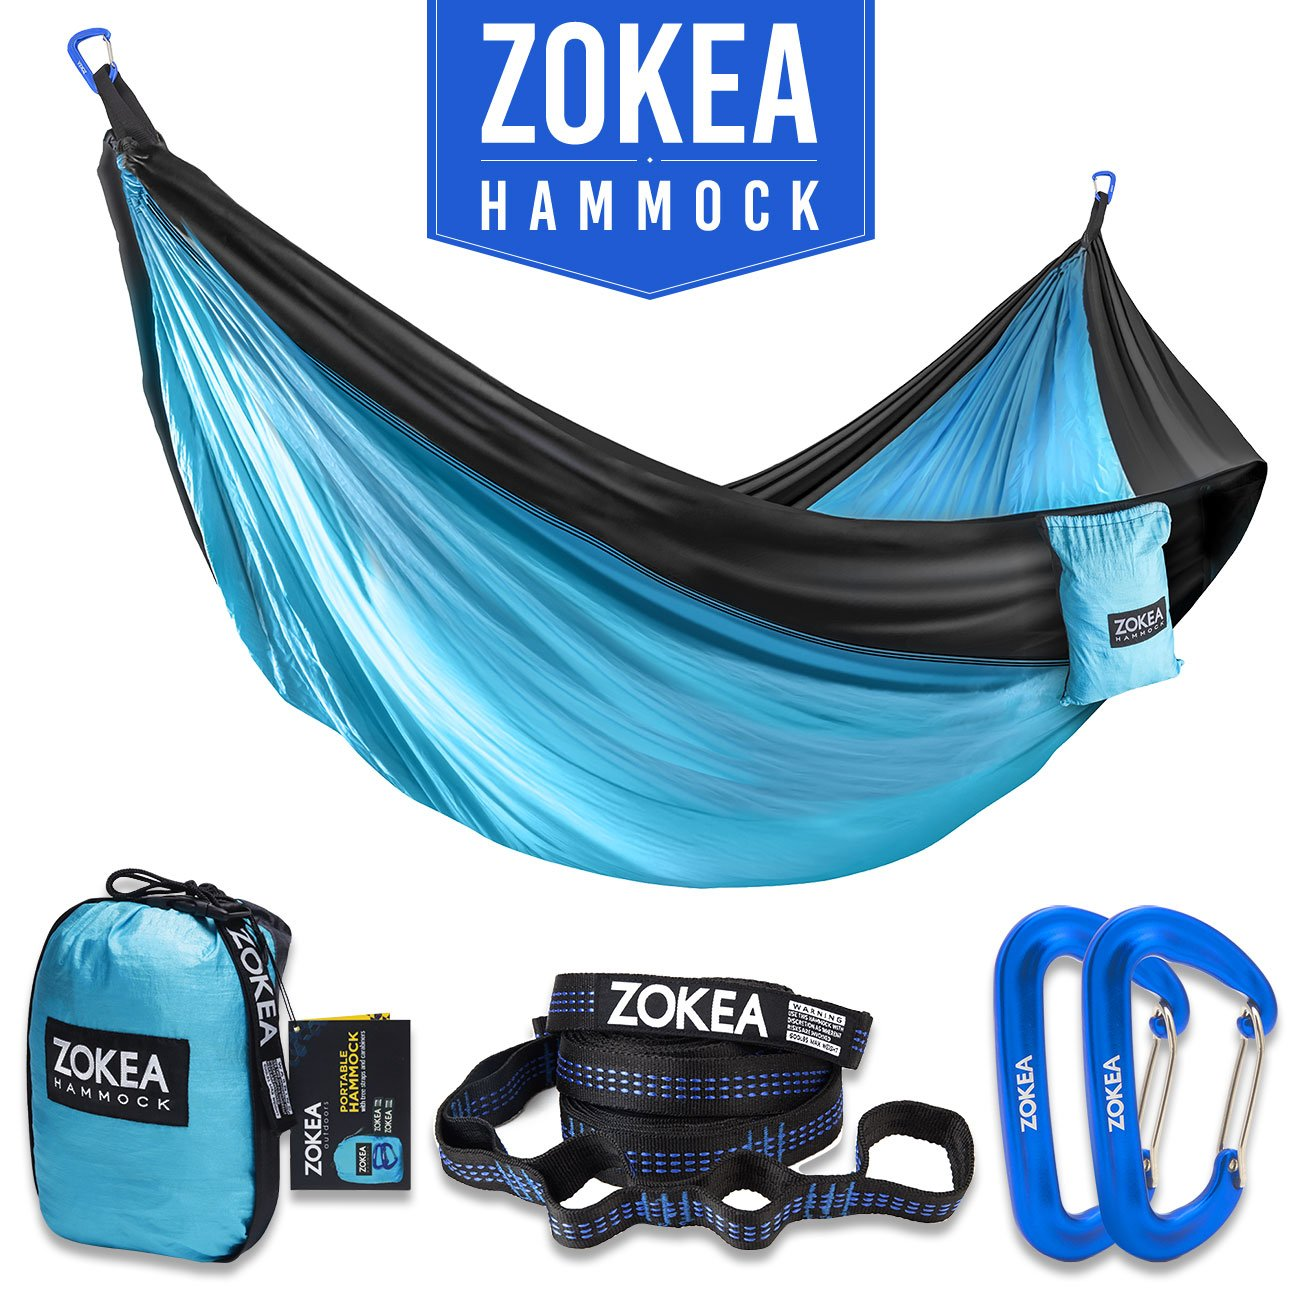 Medium image of hammock